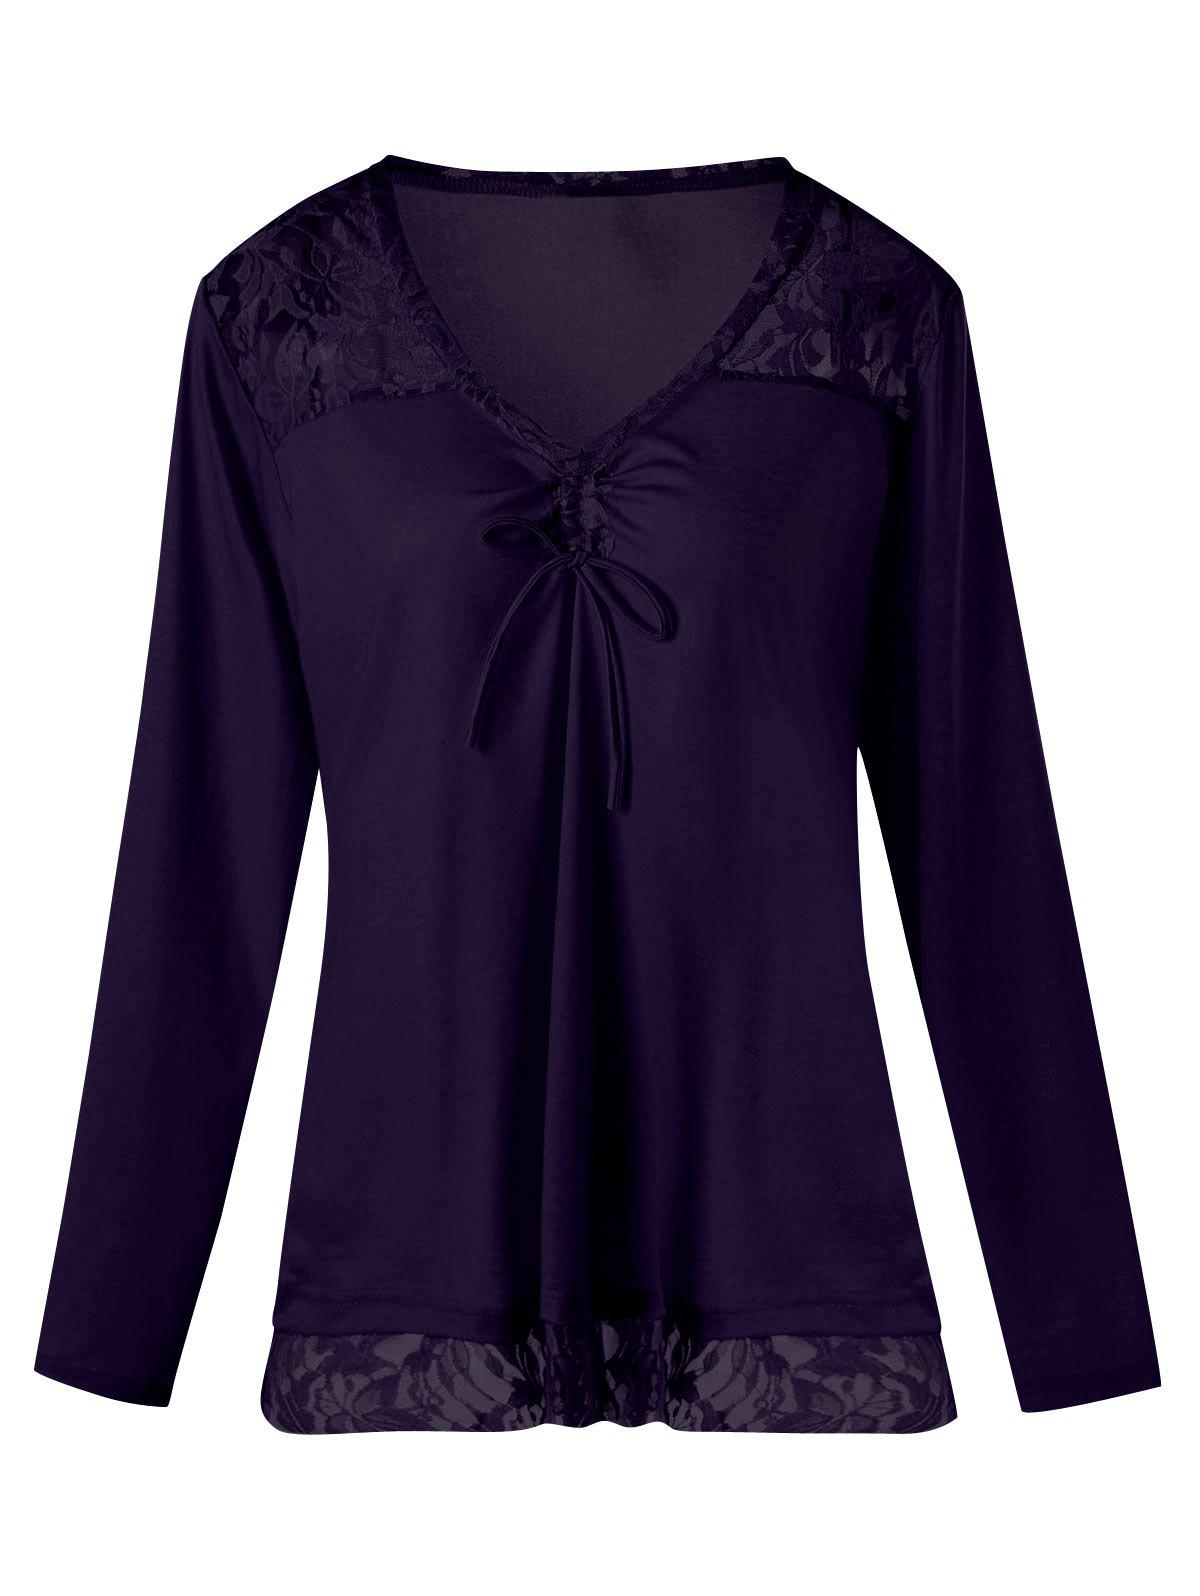 Lace Insert Plus Size V Neck TopWOMEN<br><br>Size: 2XL; Color: DEEP PURPLE; Material: Polyester,Spandex; Shirt Length: Regular; Sleeve Length: Full; Collar: V-Neck; Style: Fashion; Season: Fall,Spring; Pattern Type: Solid; Weight: 0.3000kg; Package Contents: 1 x Top;